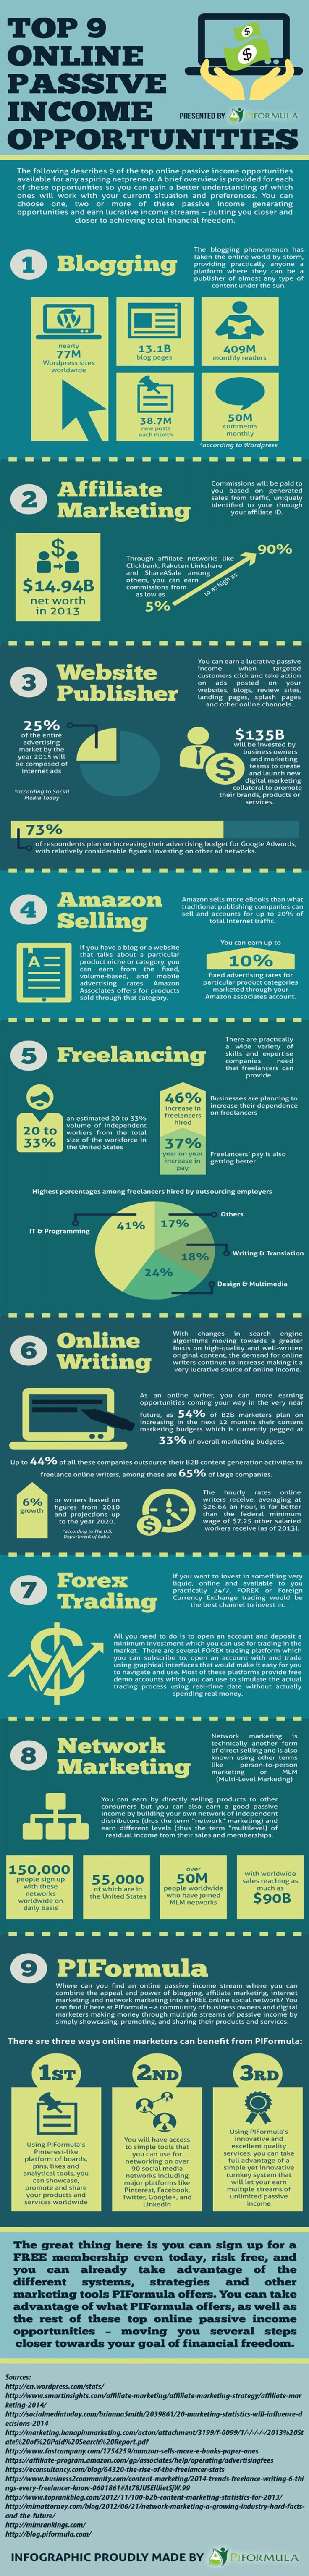 Top 9 Online Passive Income Opportunities Infographic